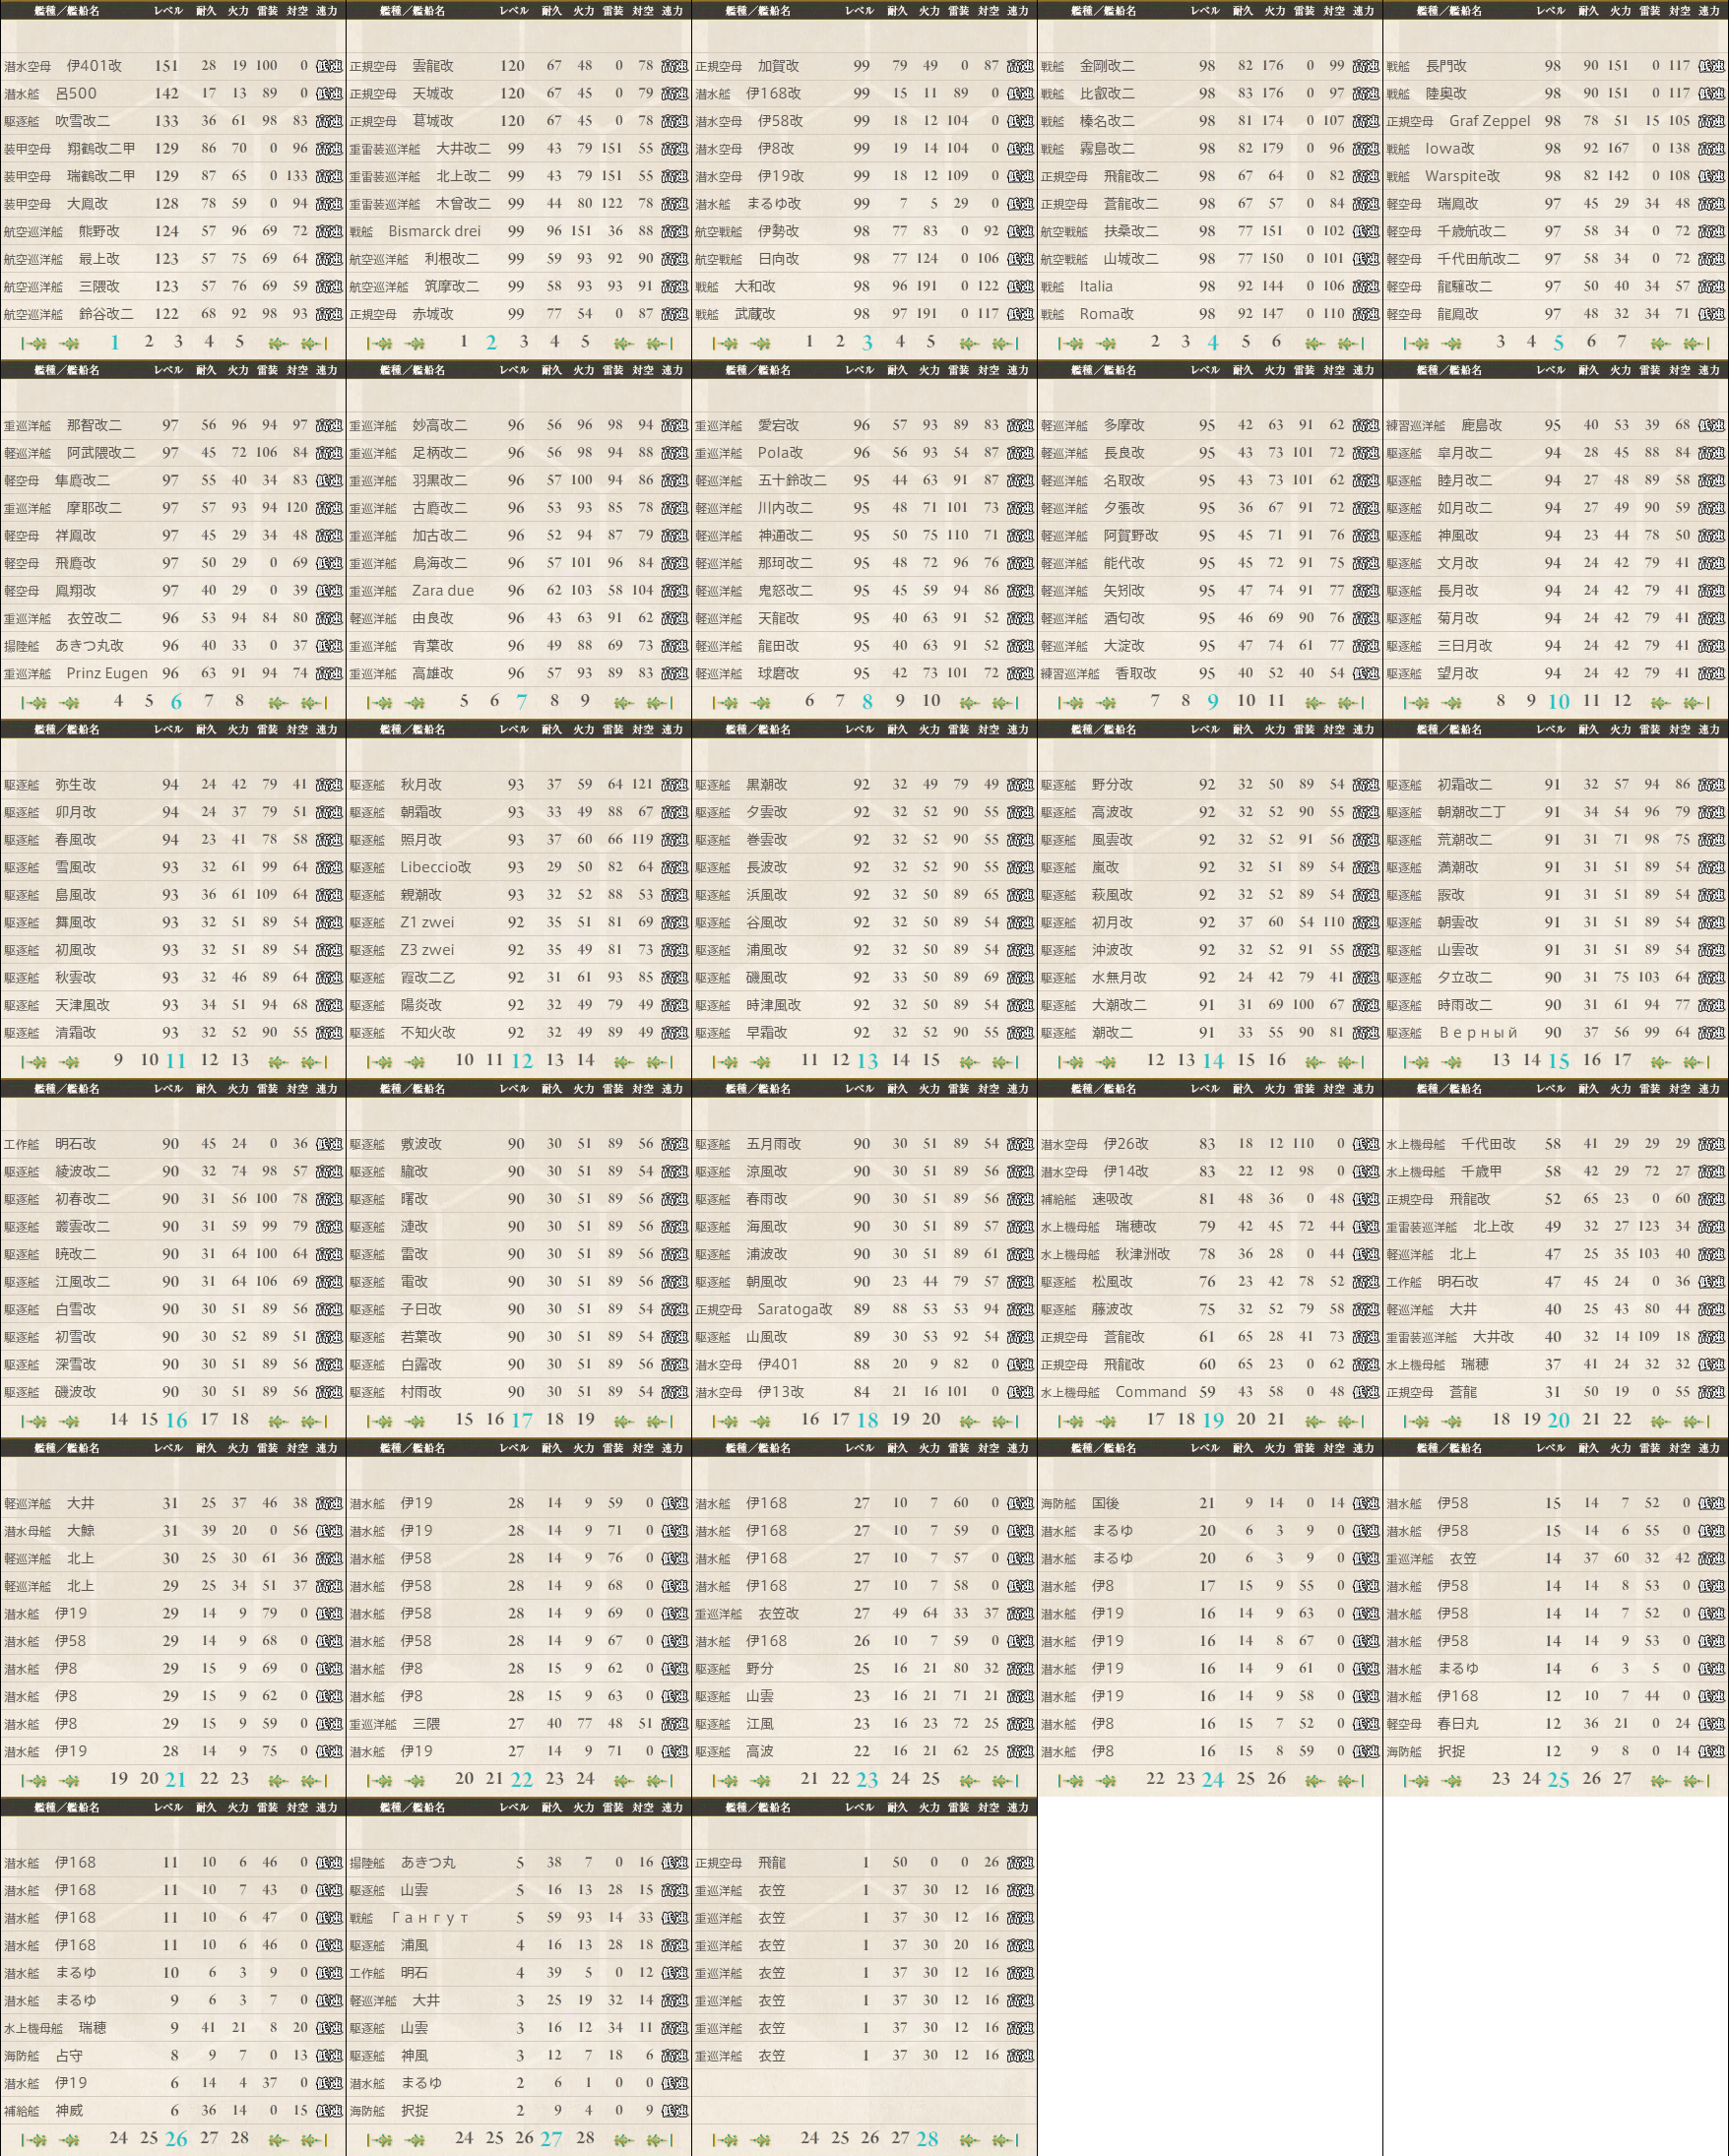 data.kancolle.levelsort.20170521.png